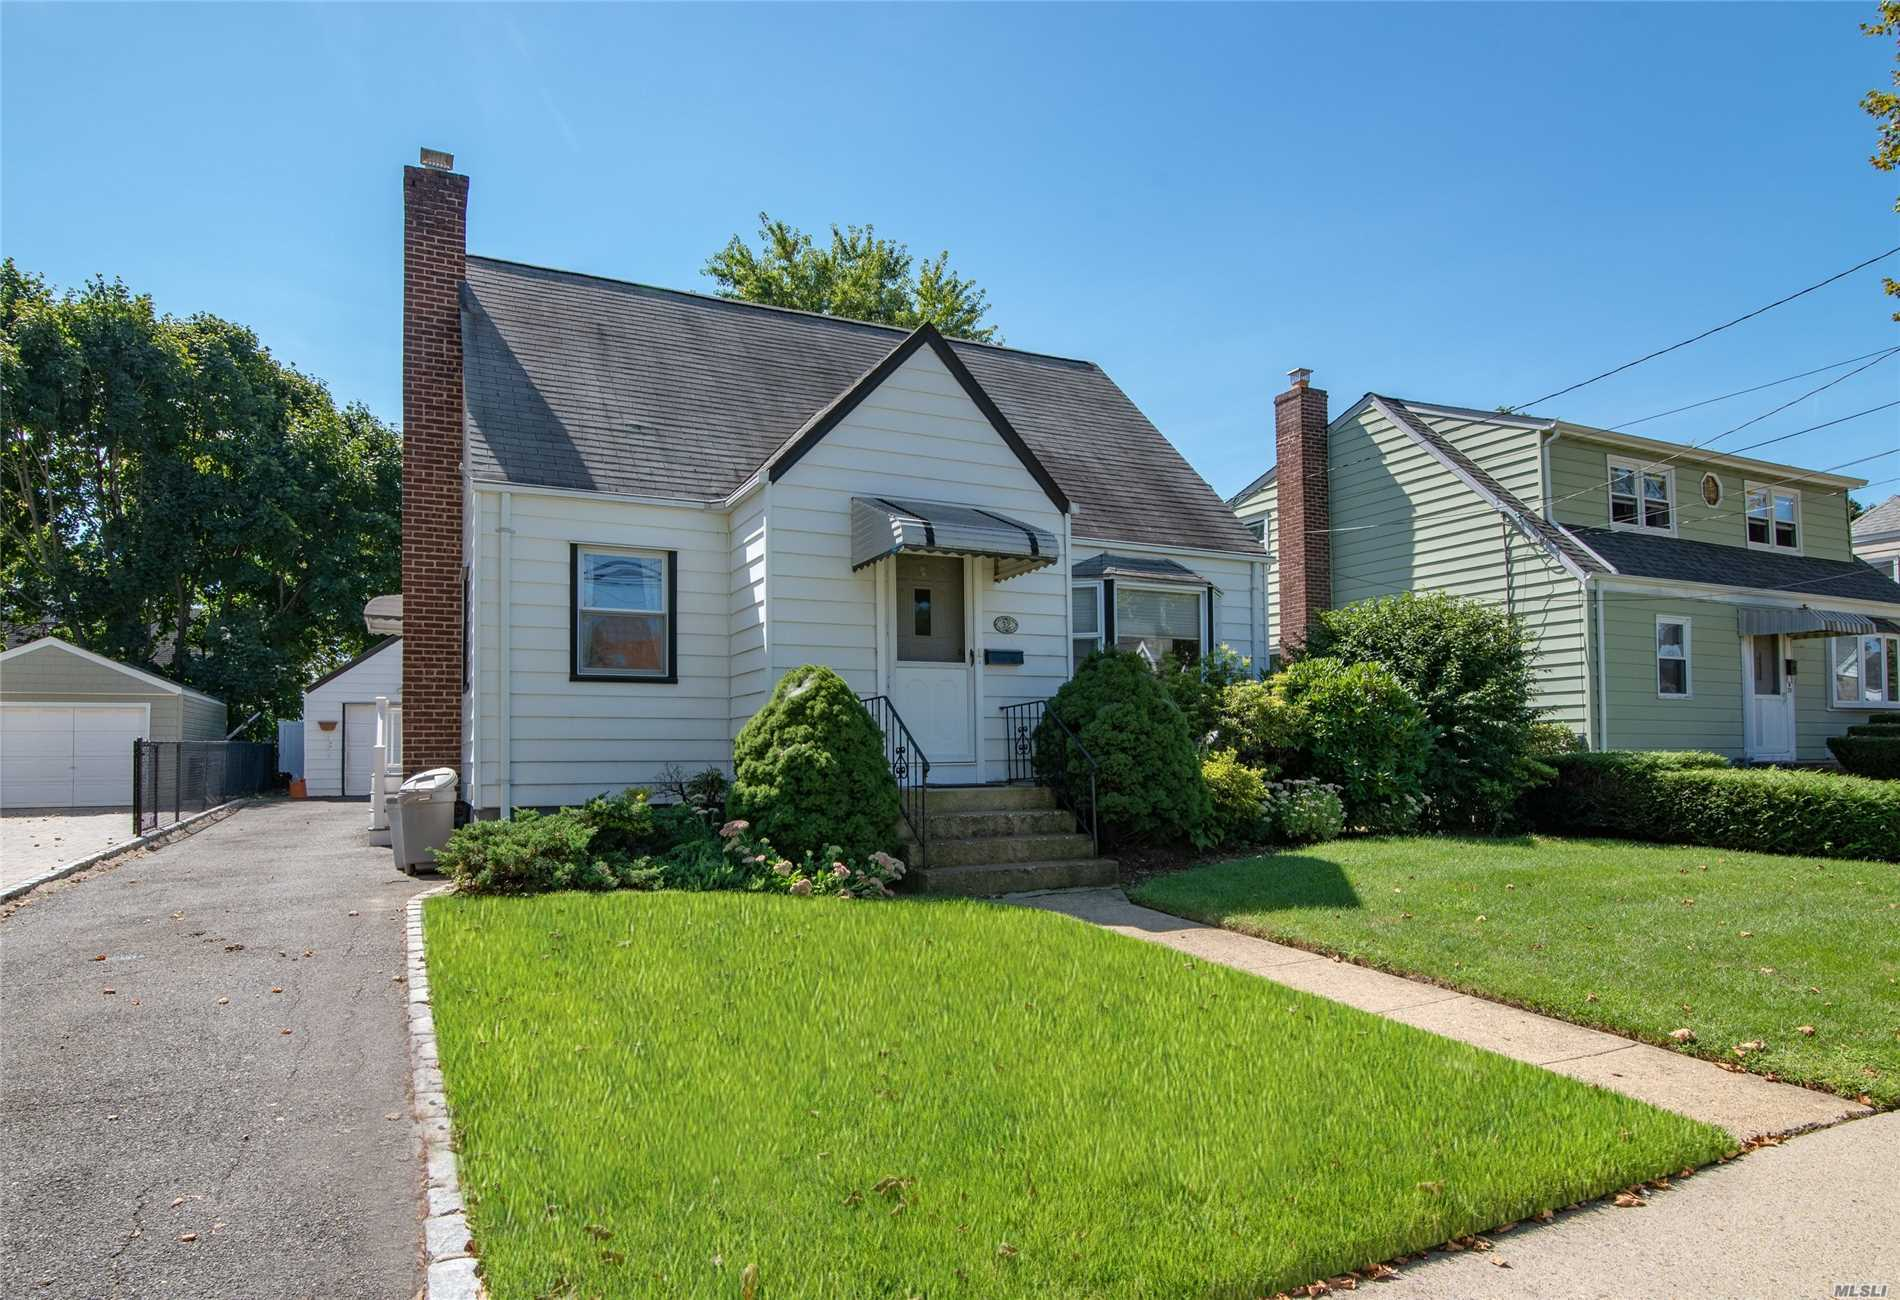 A Must See In Award Winning Herricks School District. Beautifully Maintained Cape With A Well Maintained Lawn. Very Close Proximity To The Lie Making New York City Just A Short Commute Away. A Hidden Gem On A Quiet Tree Lined Street, Perfect For Raising A Family!